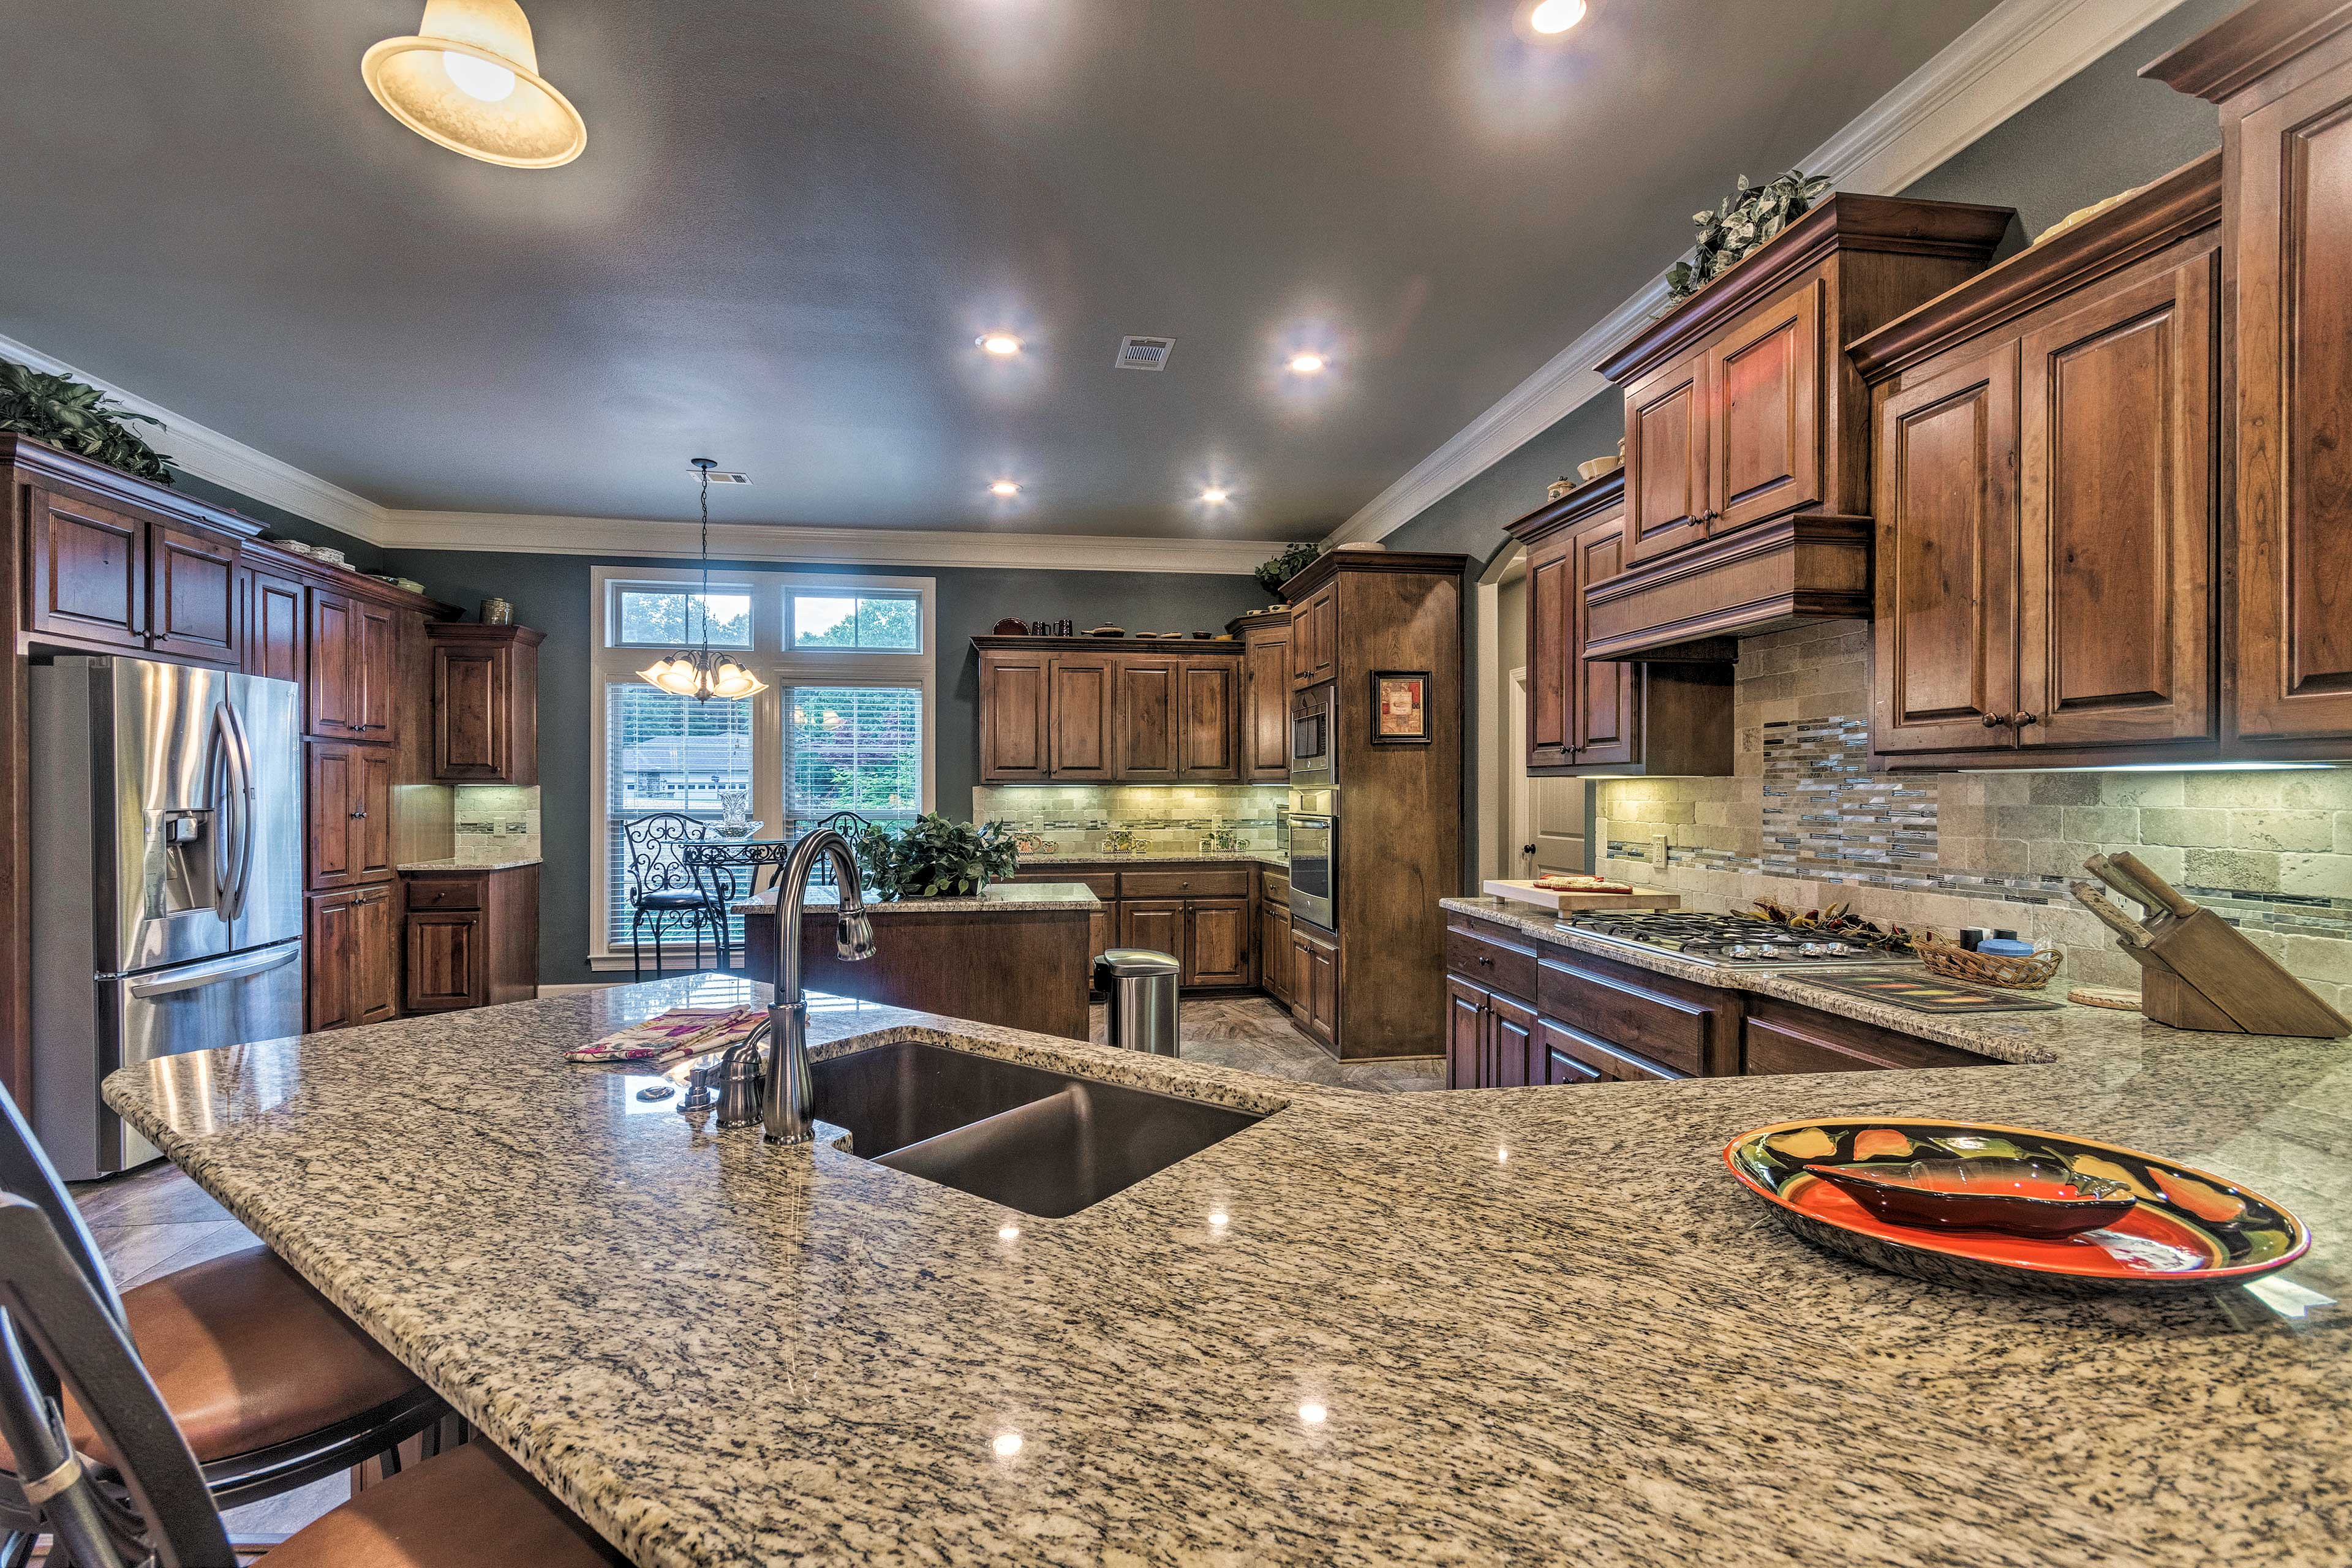 The fully equipped kitchen is sure to impress even the most seasoned chef.